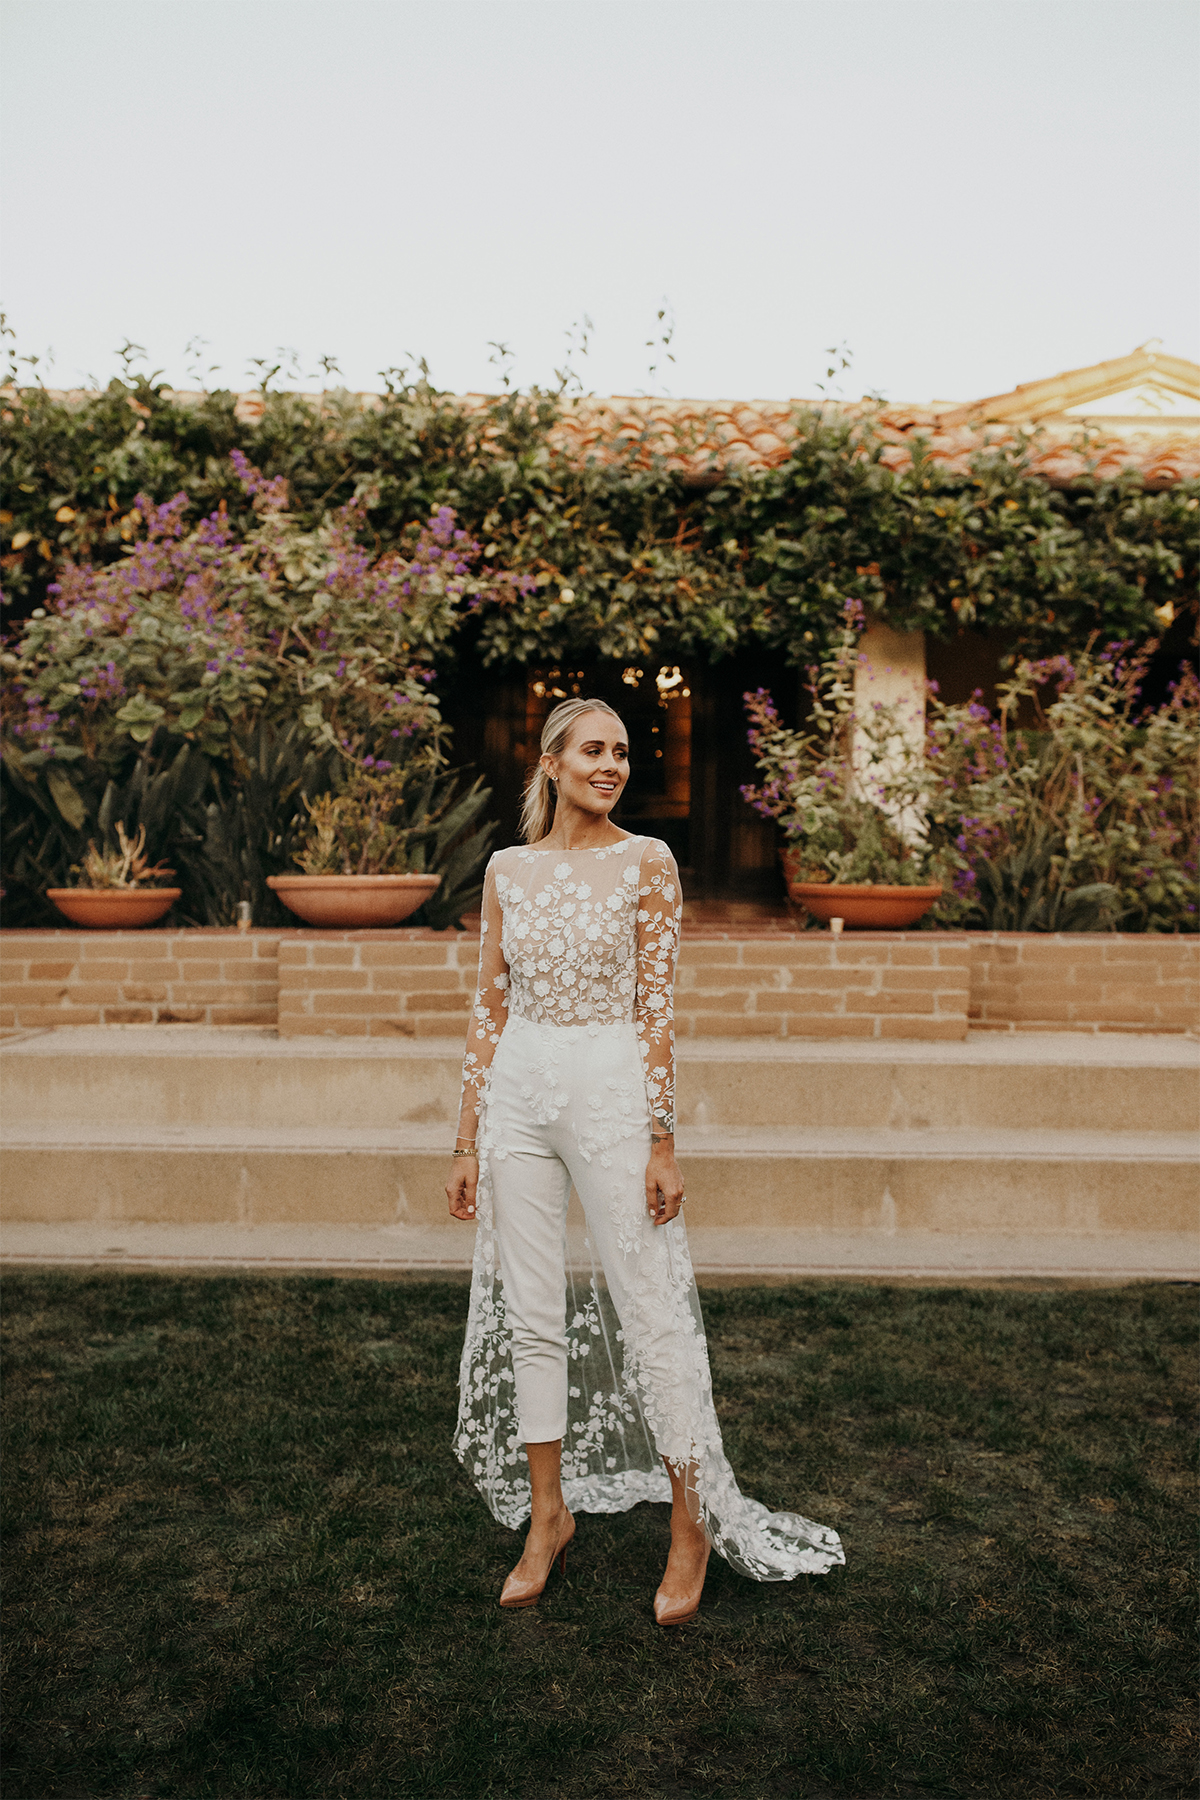 Rime Arodaky patsy white lace bridal jumpsuit wedding rehearsal dinner outfit, wedding weekend bridal outfit inspiration